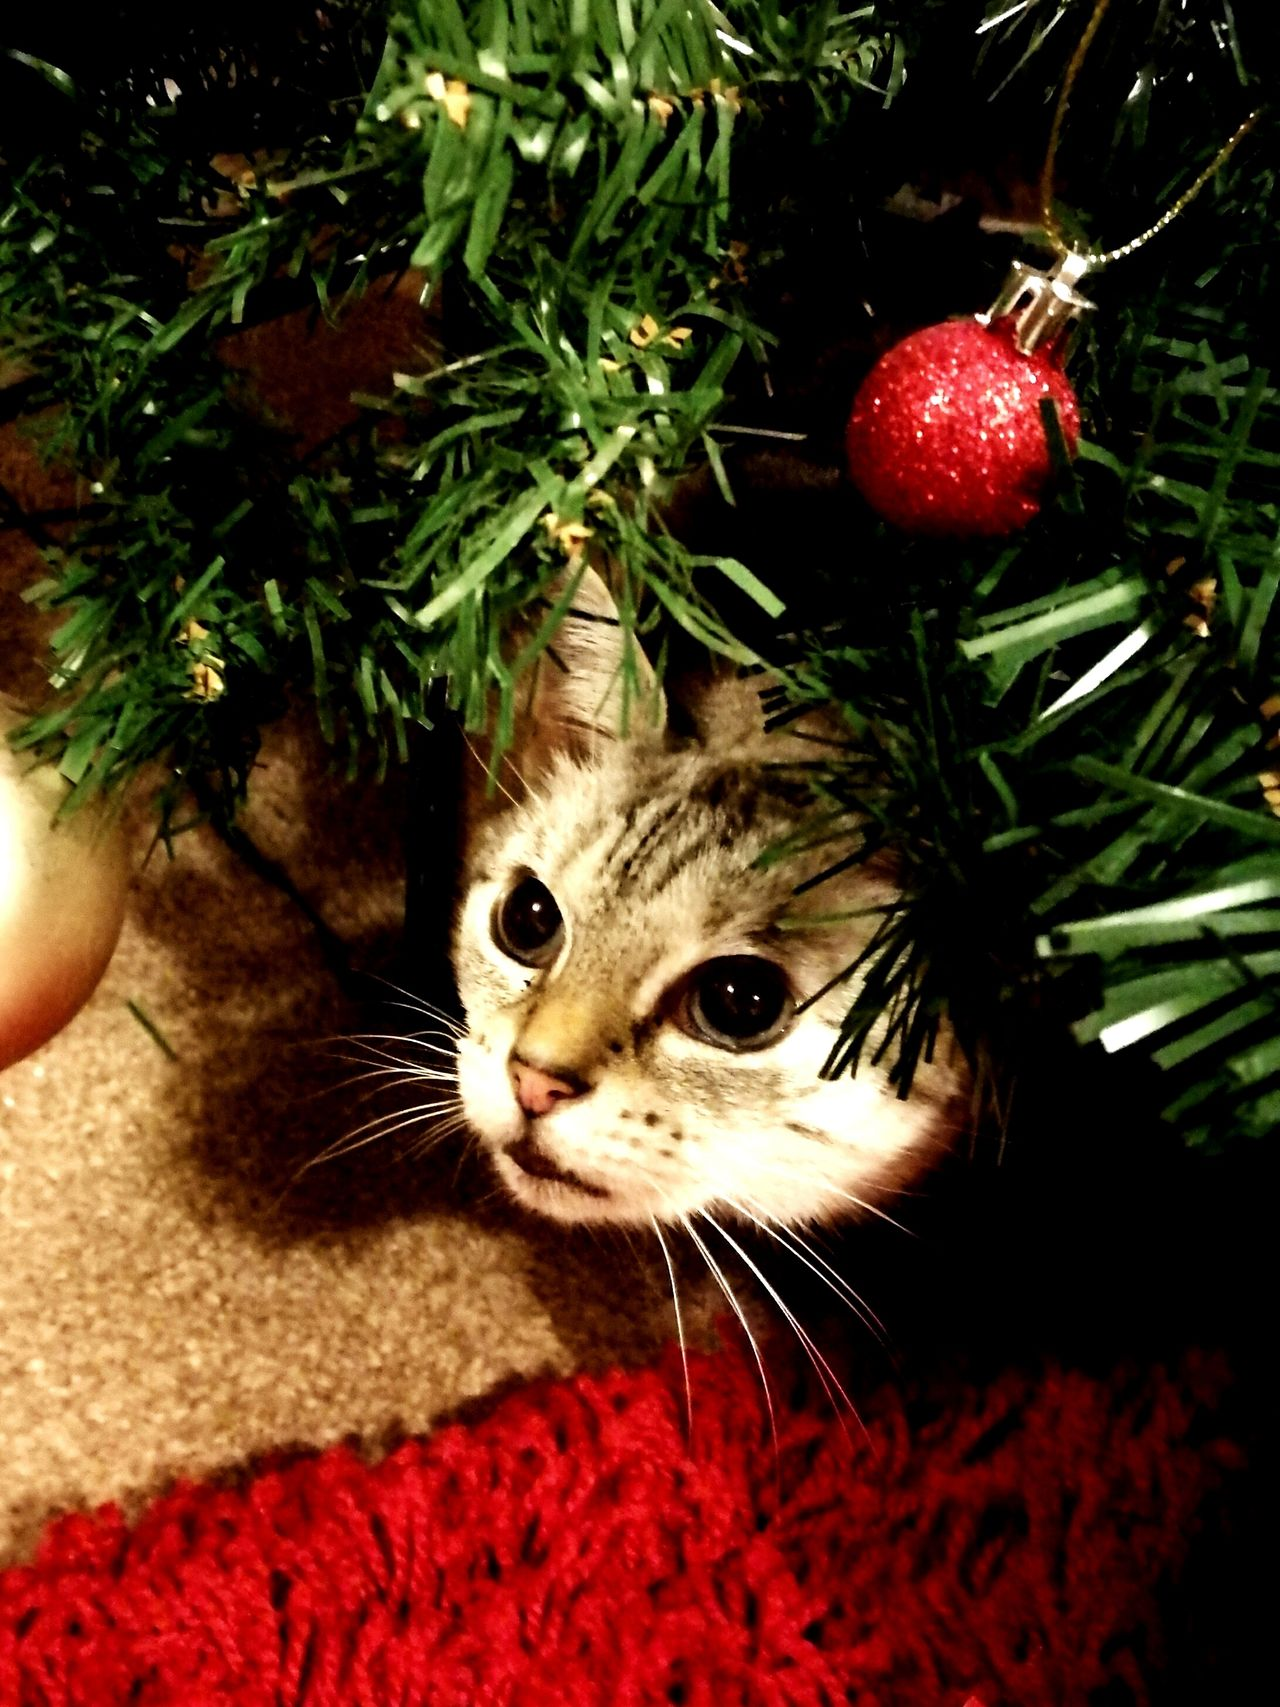 Domestic Cat Pets Looking At Camera Feline Whisker Indoors  Close-up Domestic Animals Love Cat Cat Photography Kitty Fur Baby Cat Lovers Cute Christmas Tree Christmas Christmas Bauble Bauble One AnimalCat In Christmas Tree Christmas Cat Meowychristmas Playful Cat AdoptDontShop